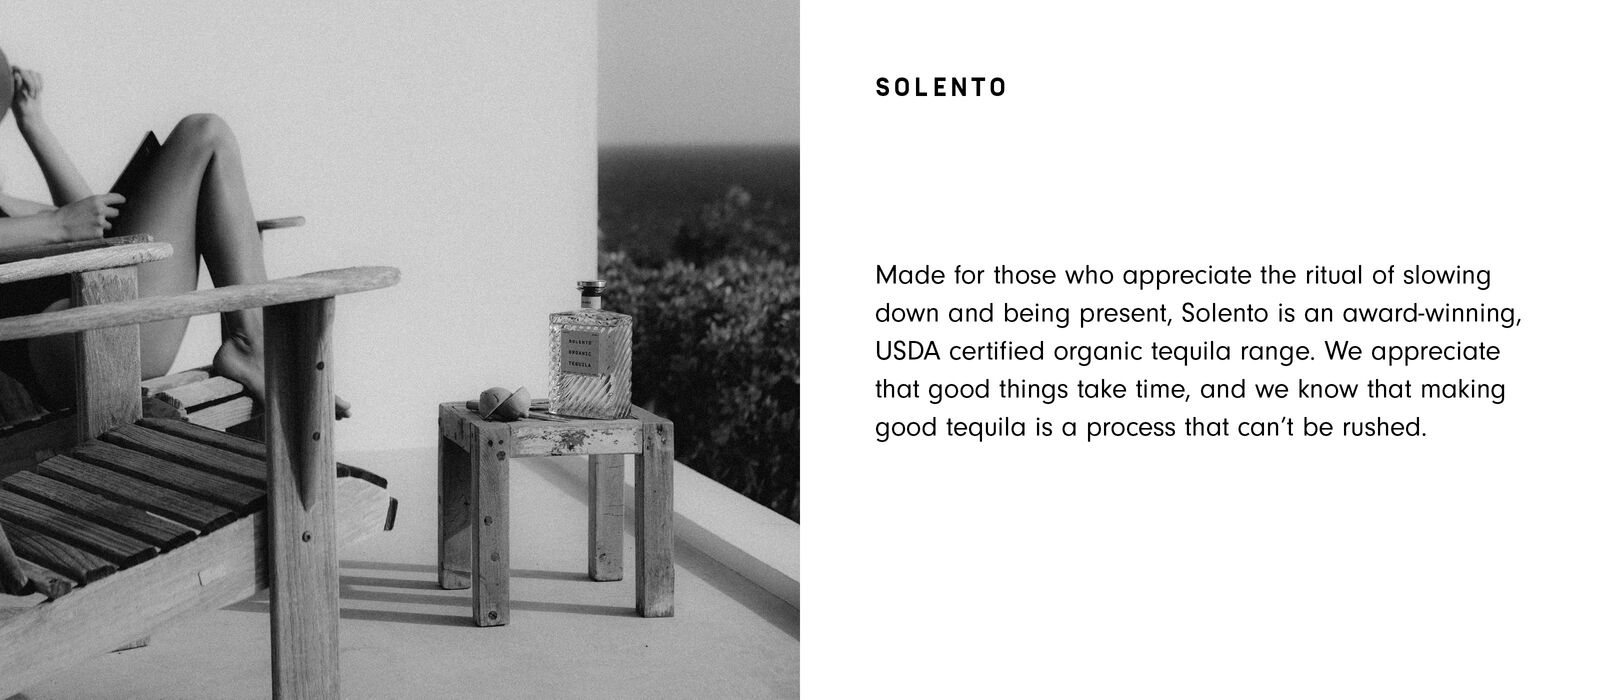 Made for those who appreciate the ritual of slowing down and being present, Solento is an award-winning, USDA certified organic tequila range. We appreciate that good things take time, and we know that making good tequila is a process that can't be rushed.